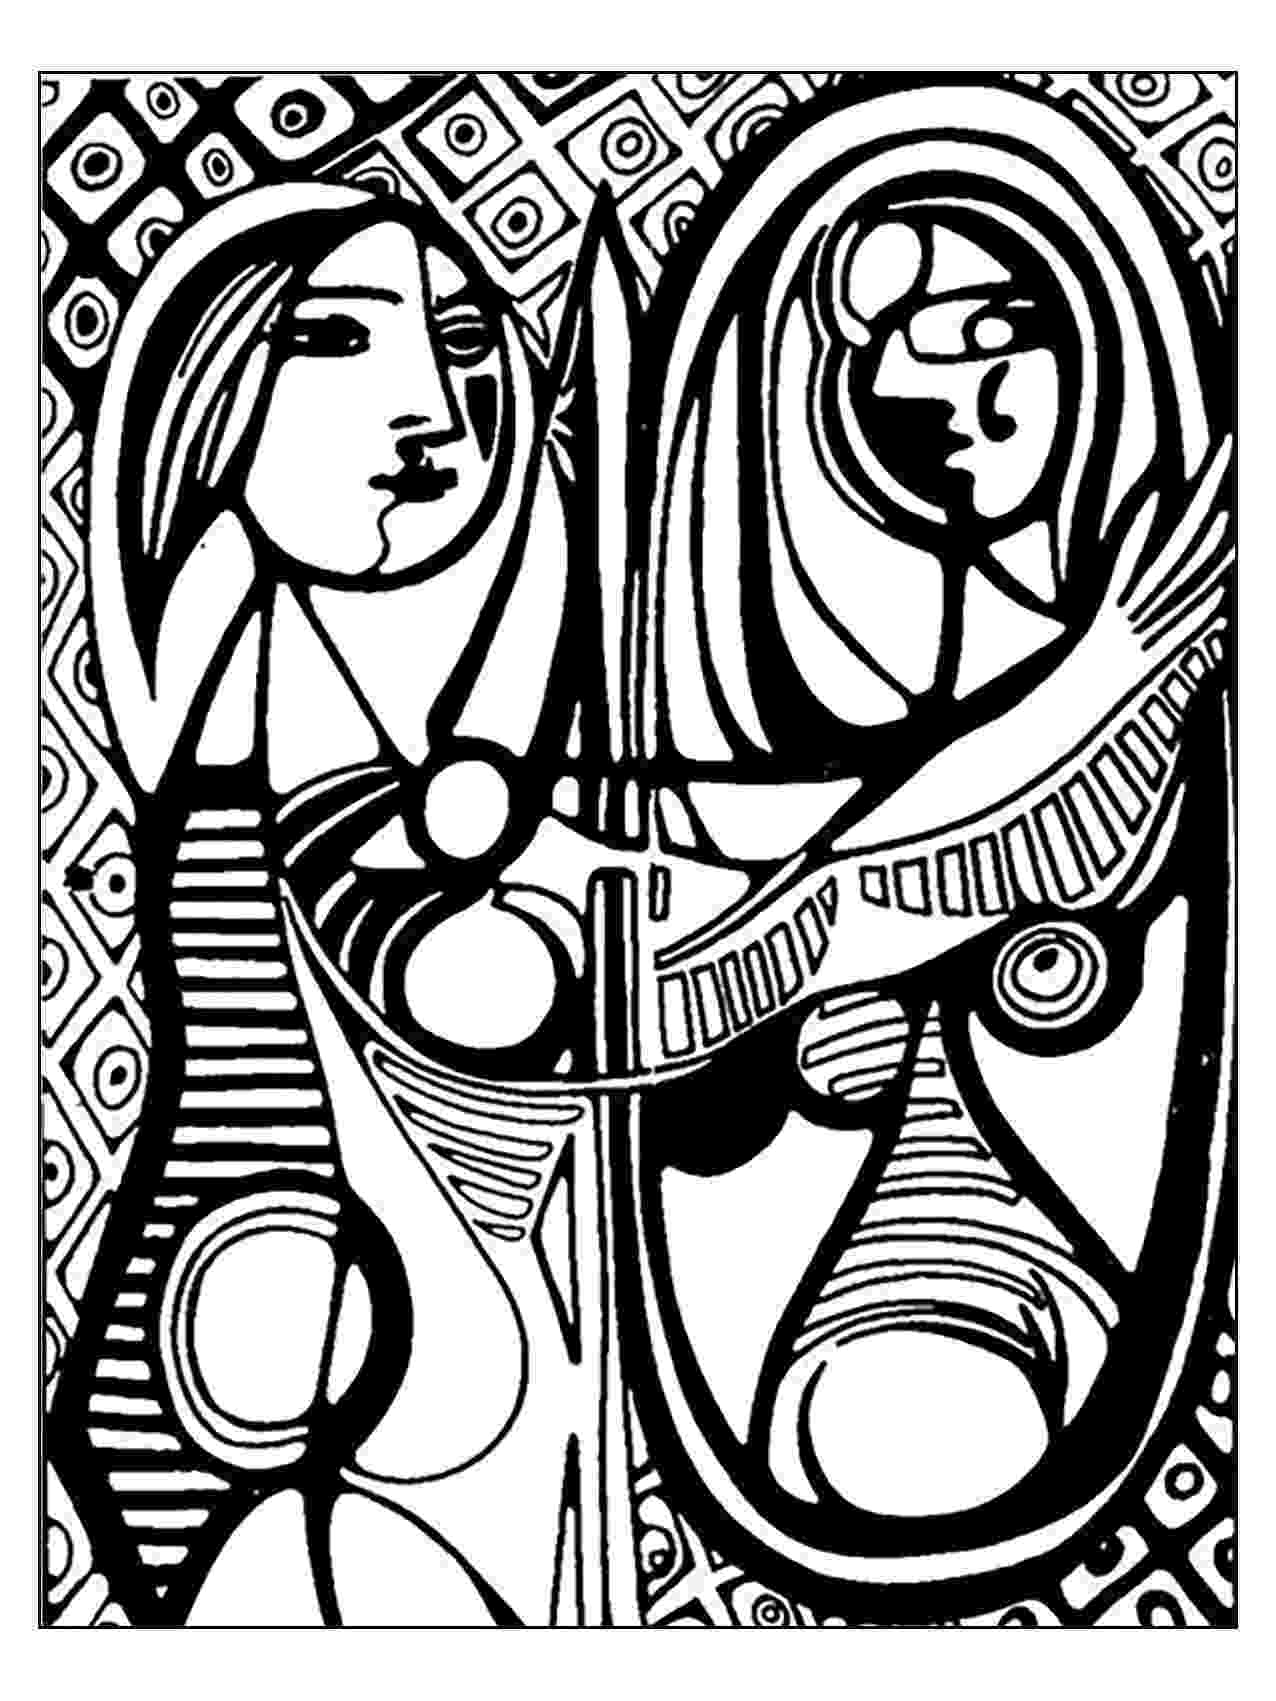 picasso coloring book pablo picasso to download for free pablo picasso kids book coloring picasso